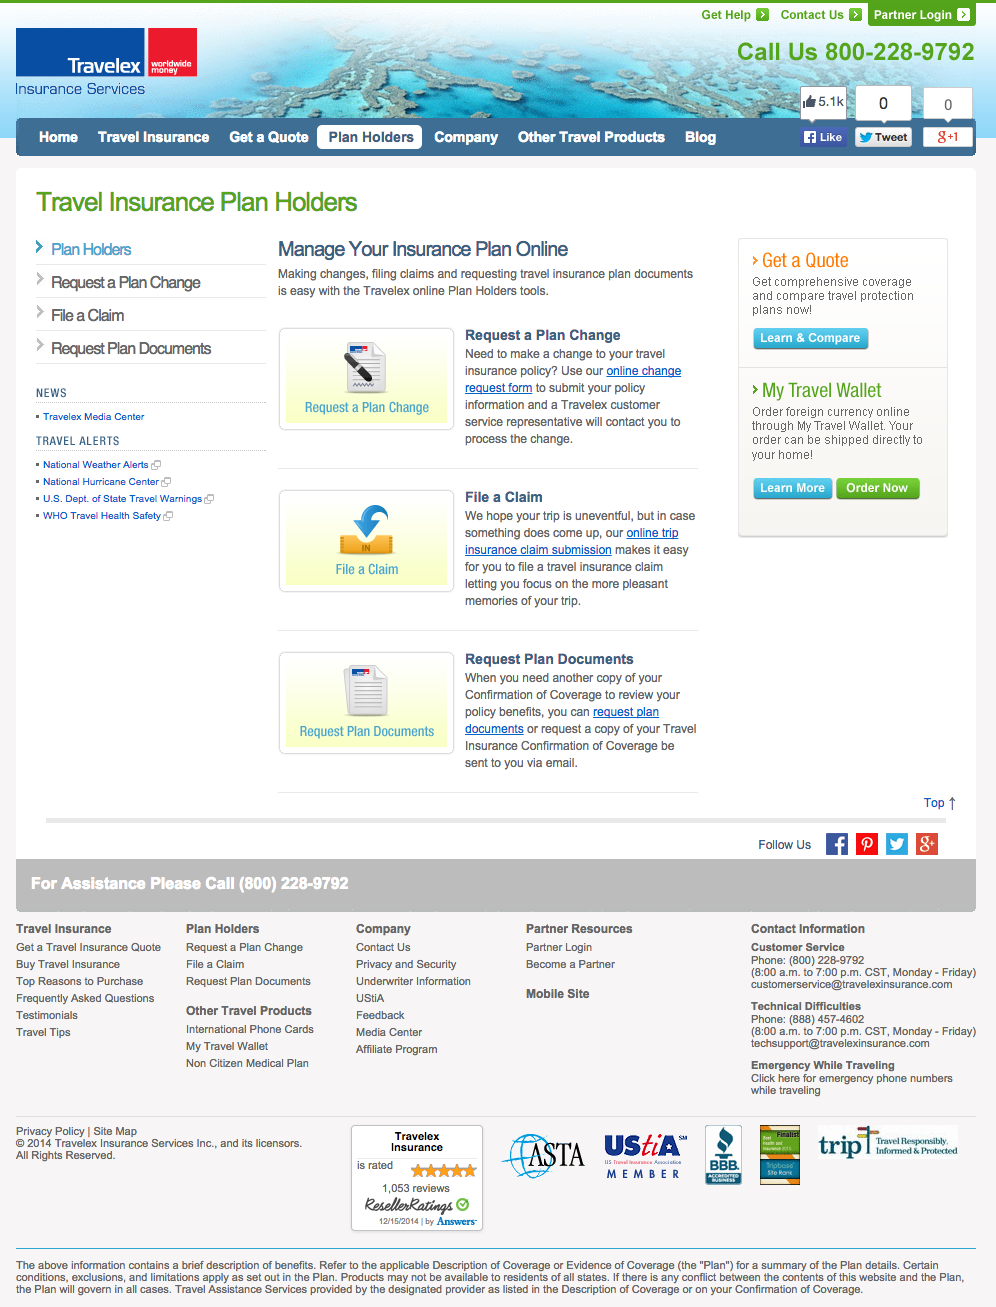 Top 2 Complaints And Reviews About Travelex Insurance Services